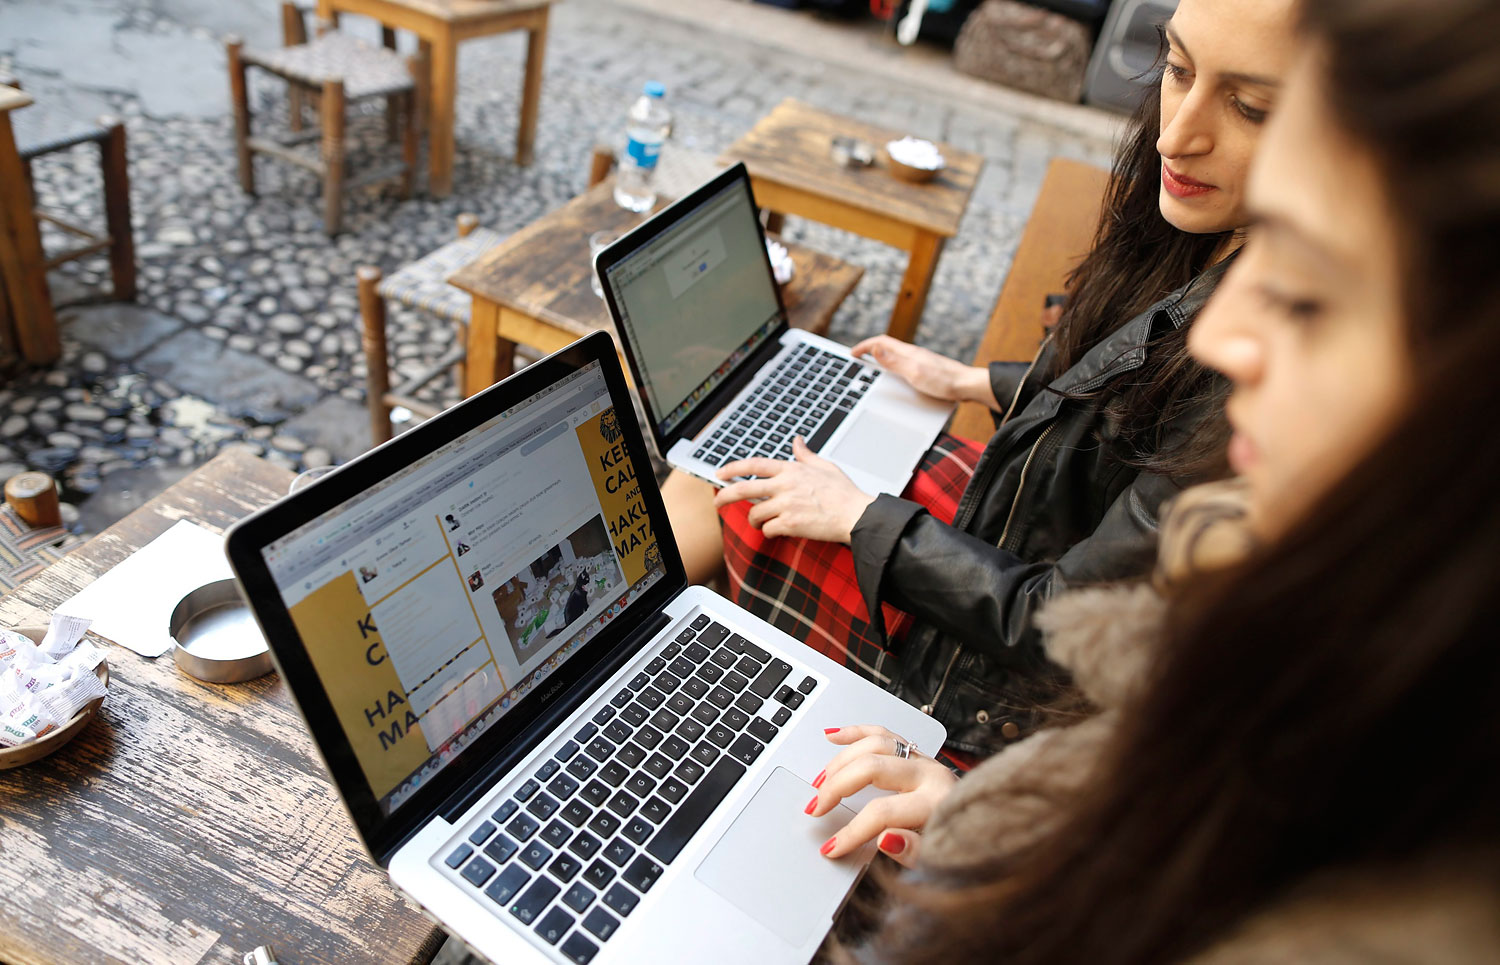 Two Turkish women try to get on Twitter website on their laptops at a cafe in Istanbul, March 21, 2014.